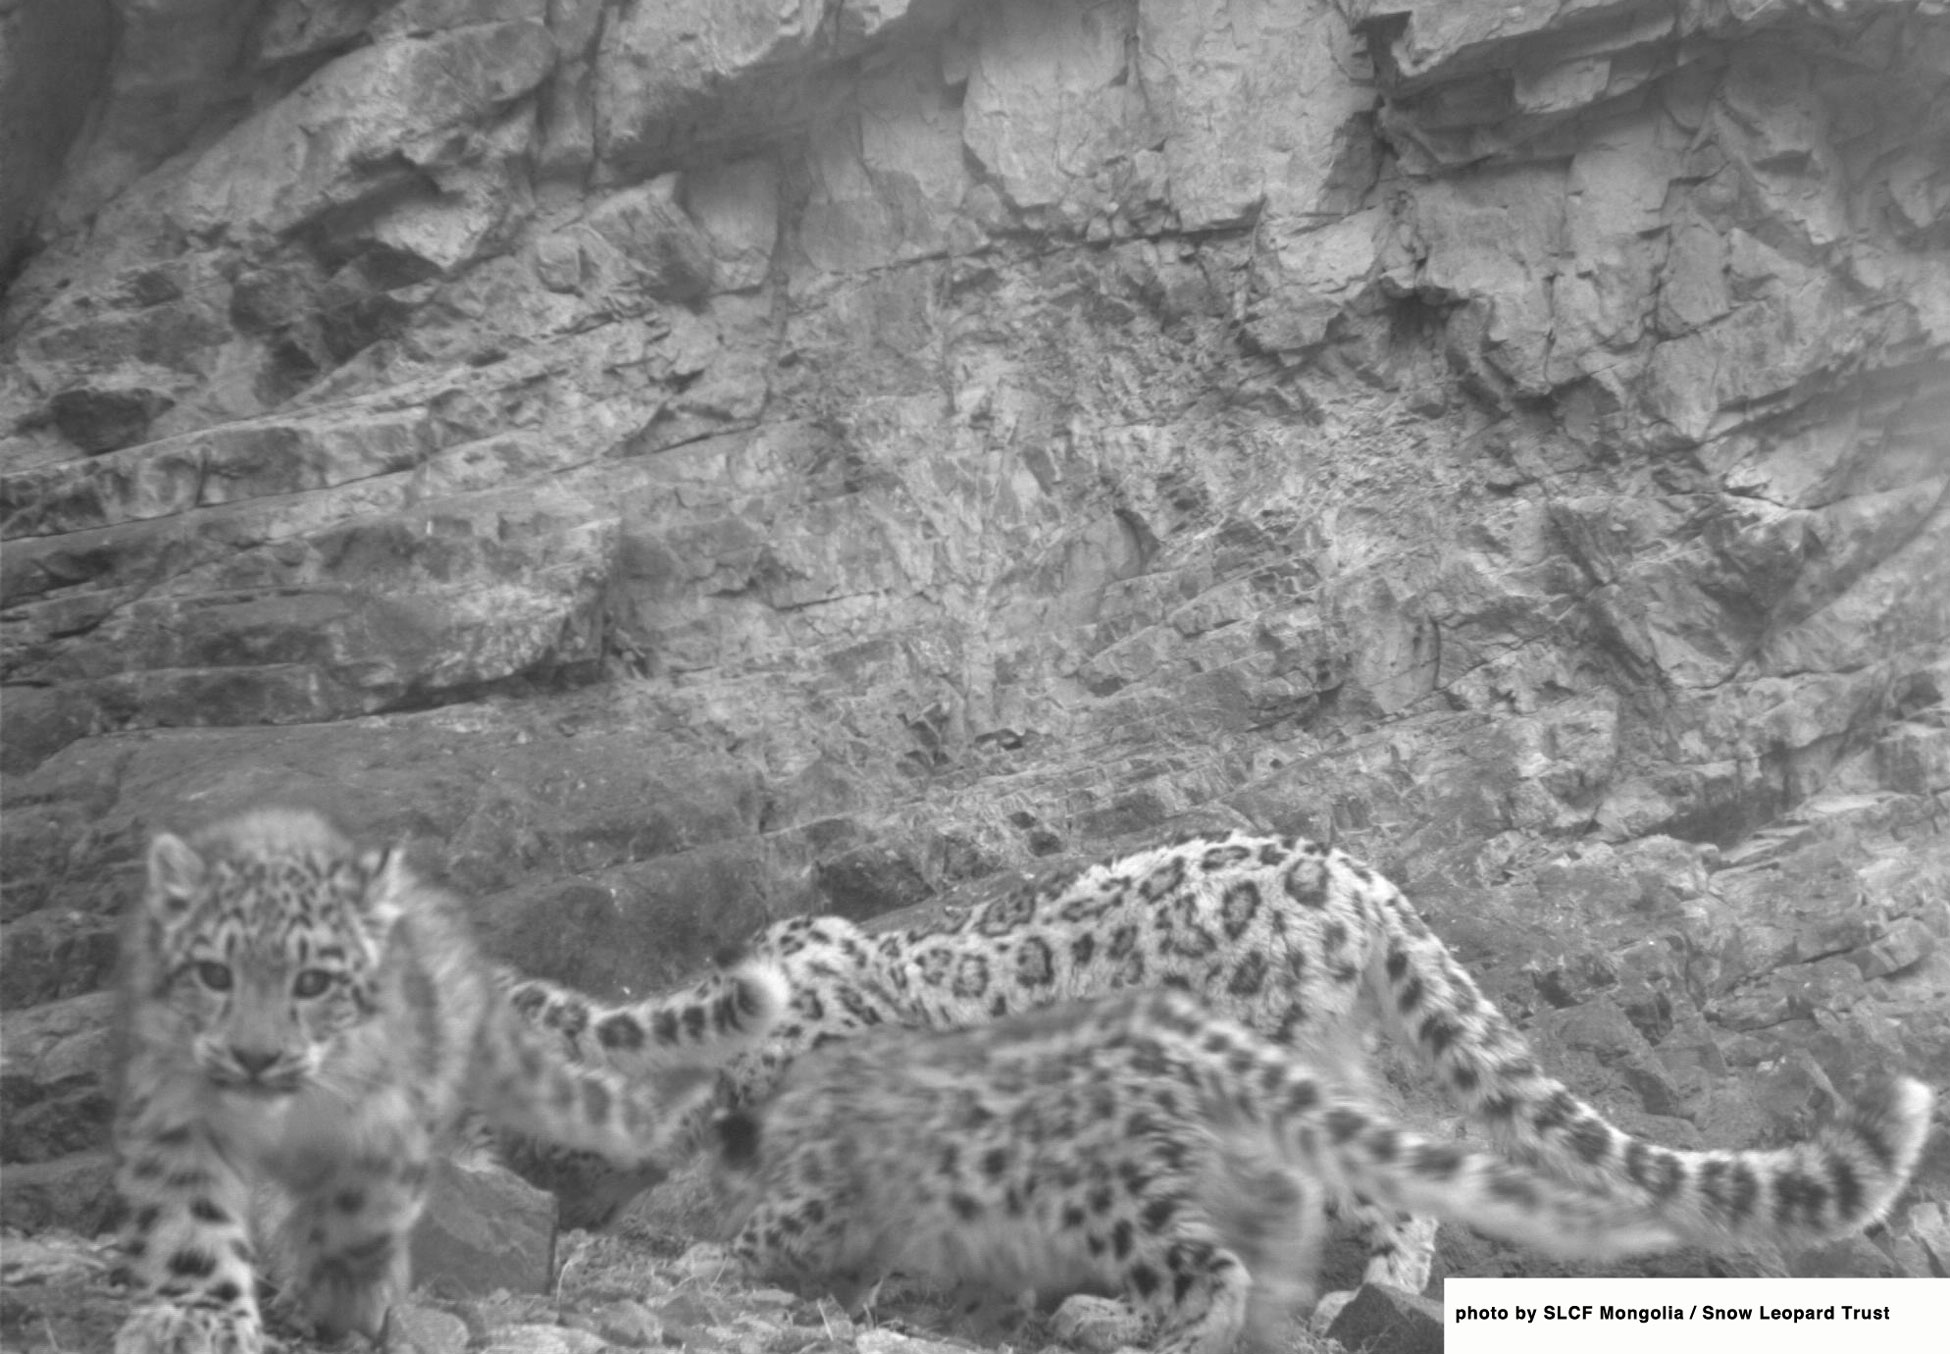 Early risers! A snow leopard mother with 3 cubs